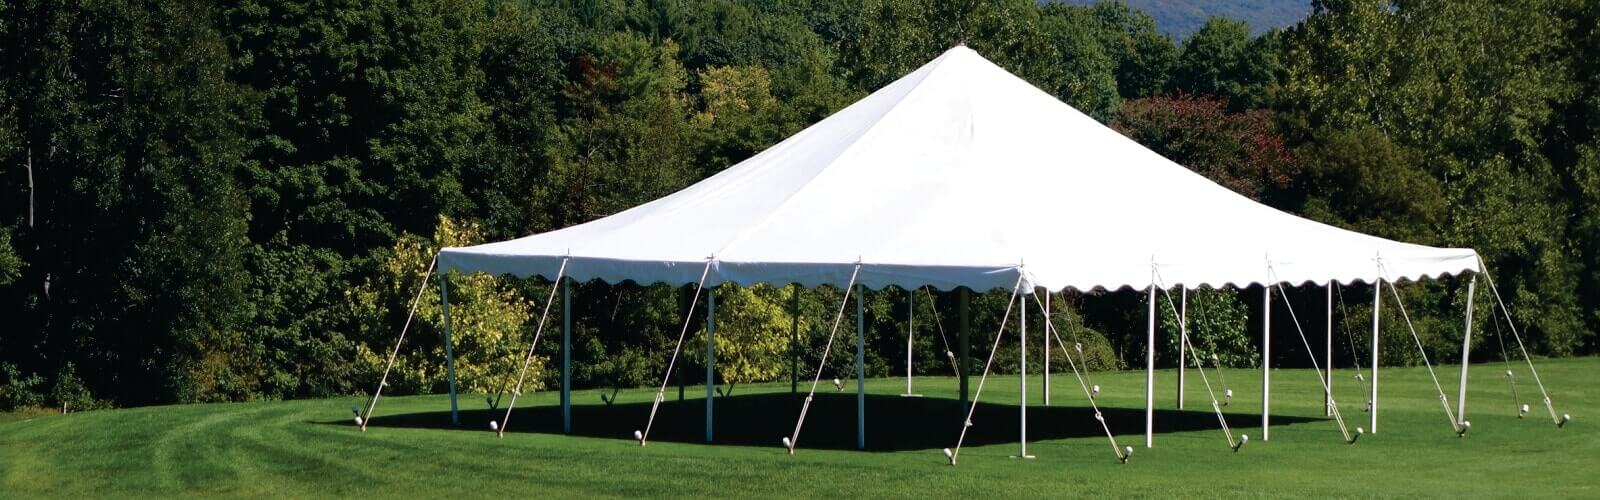 white on green green grass tents